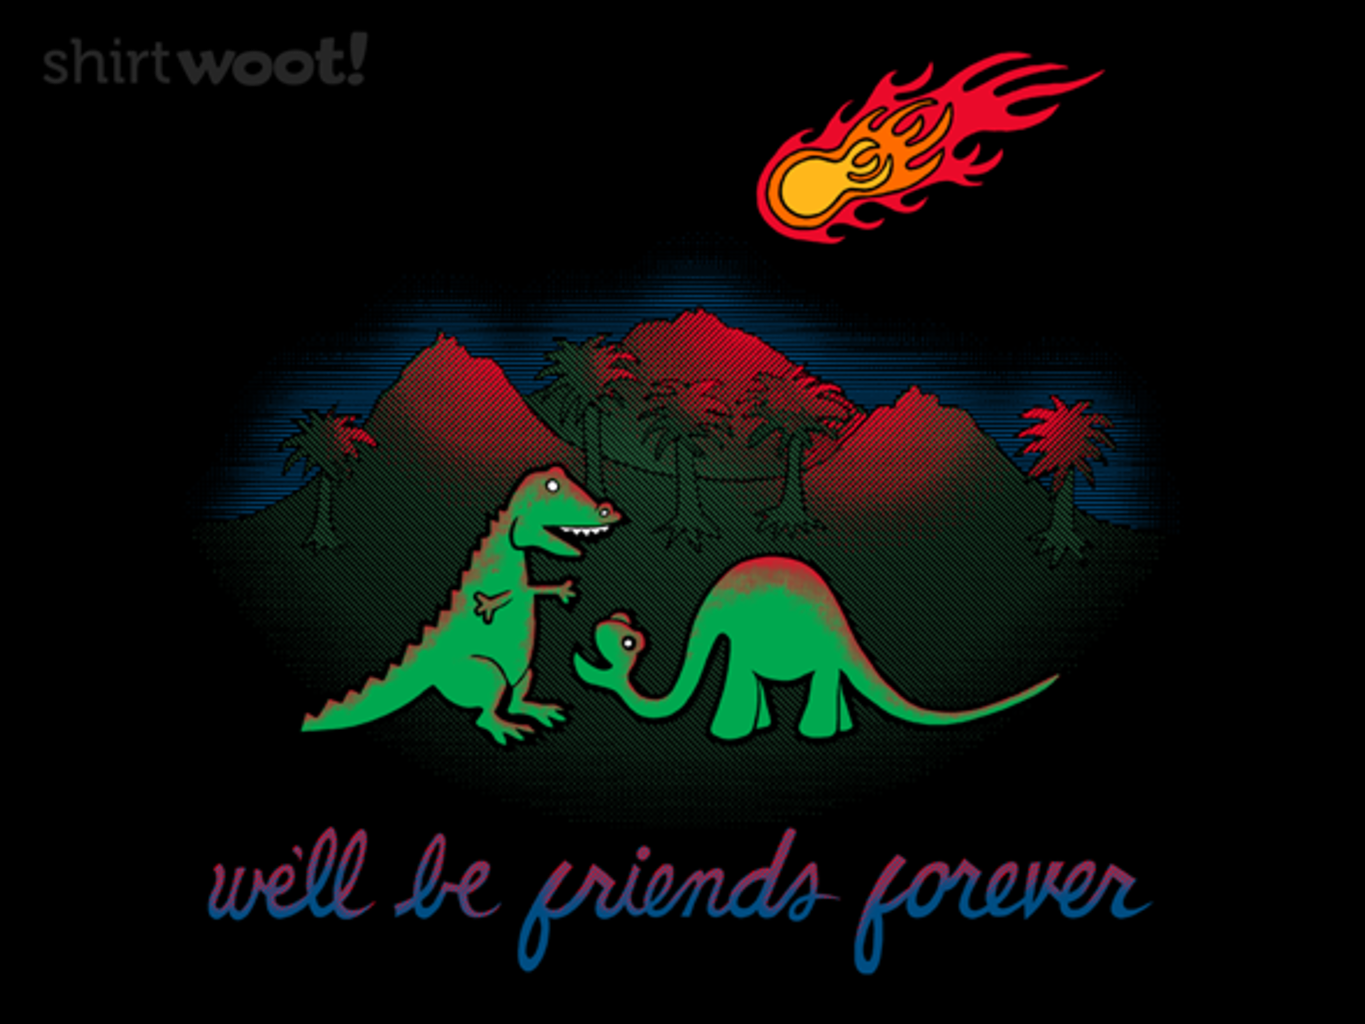 Woot!: We'll Be Friends Forever - $15.00 + Free shipping